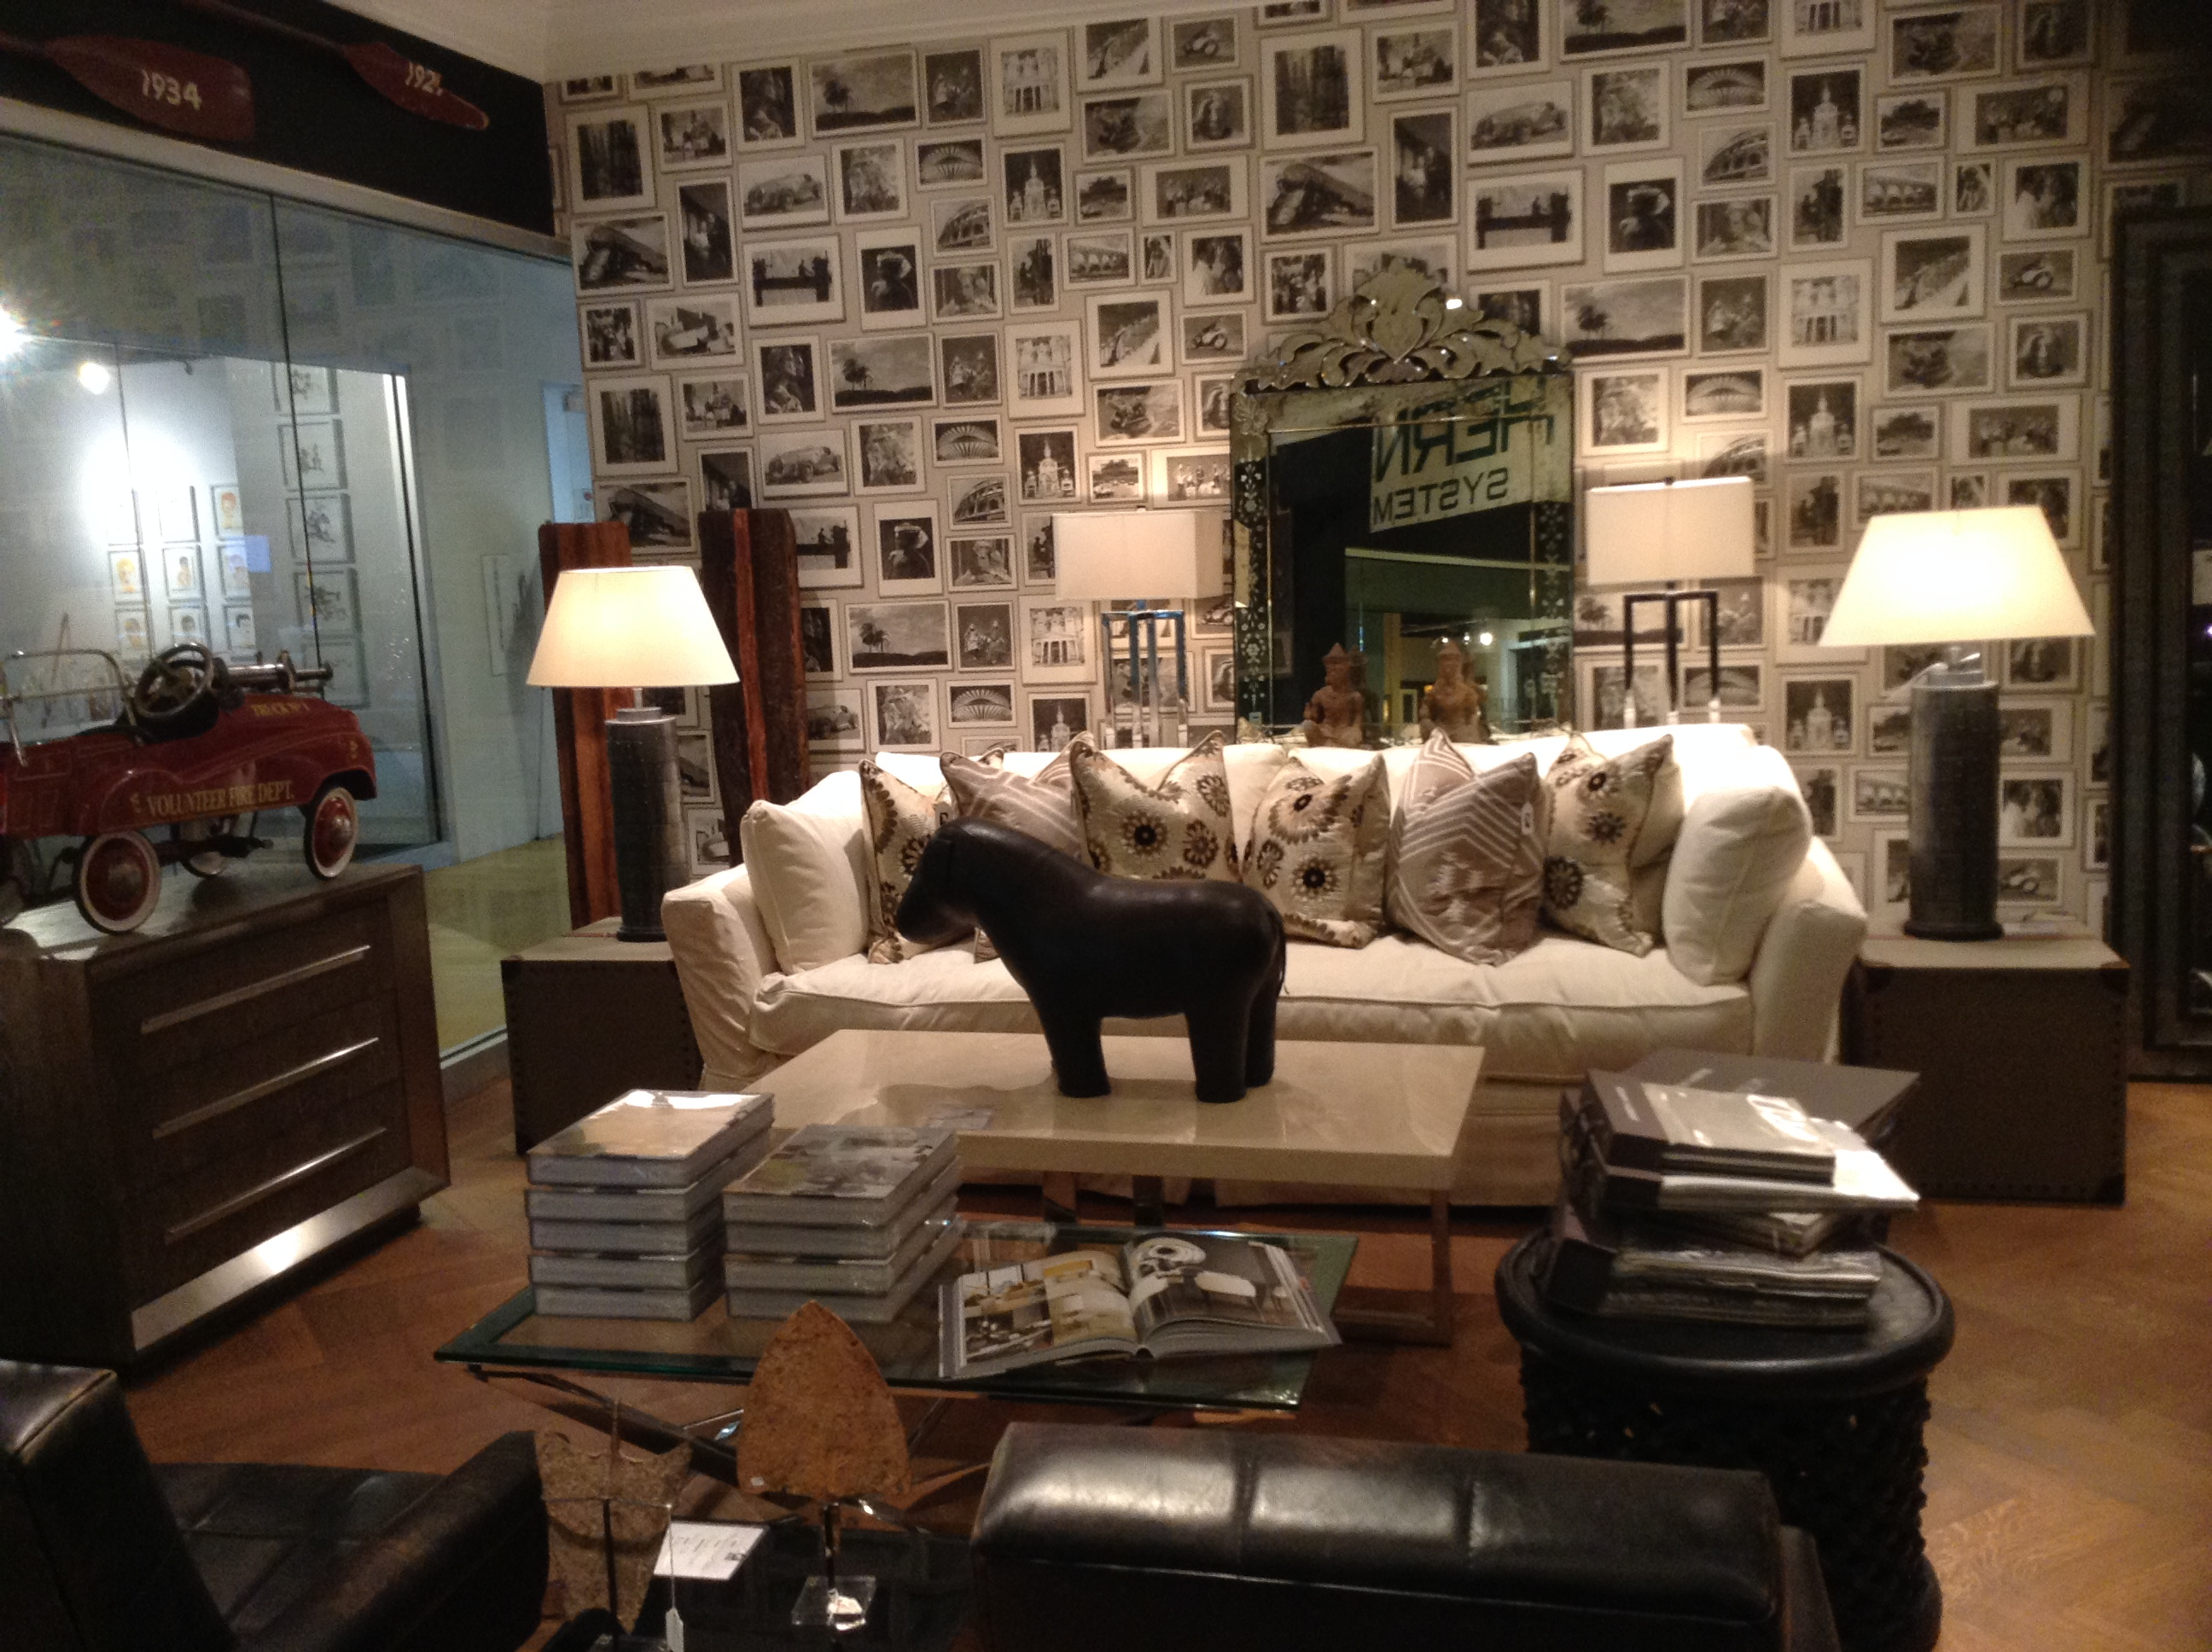 Andrew-Martins-Cadogan-Sofa-with-Celeste-cushions-infront-of-our-Studio-Venetian-Crown-wallpaper-wp5602901